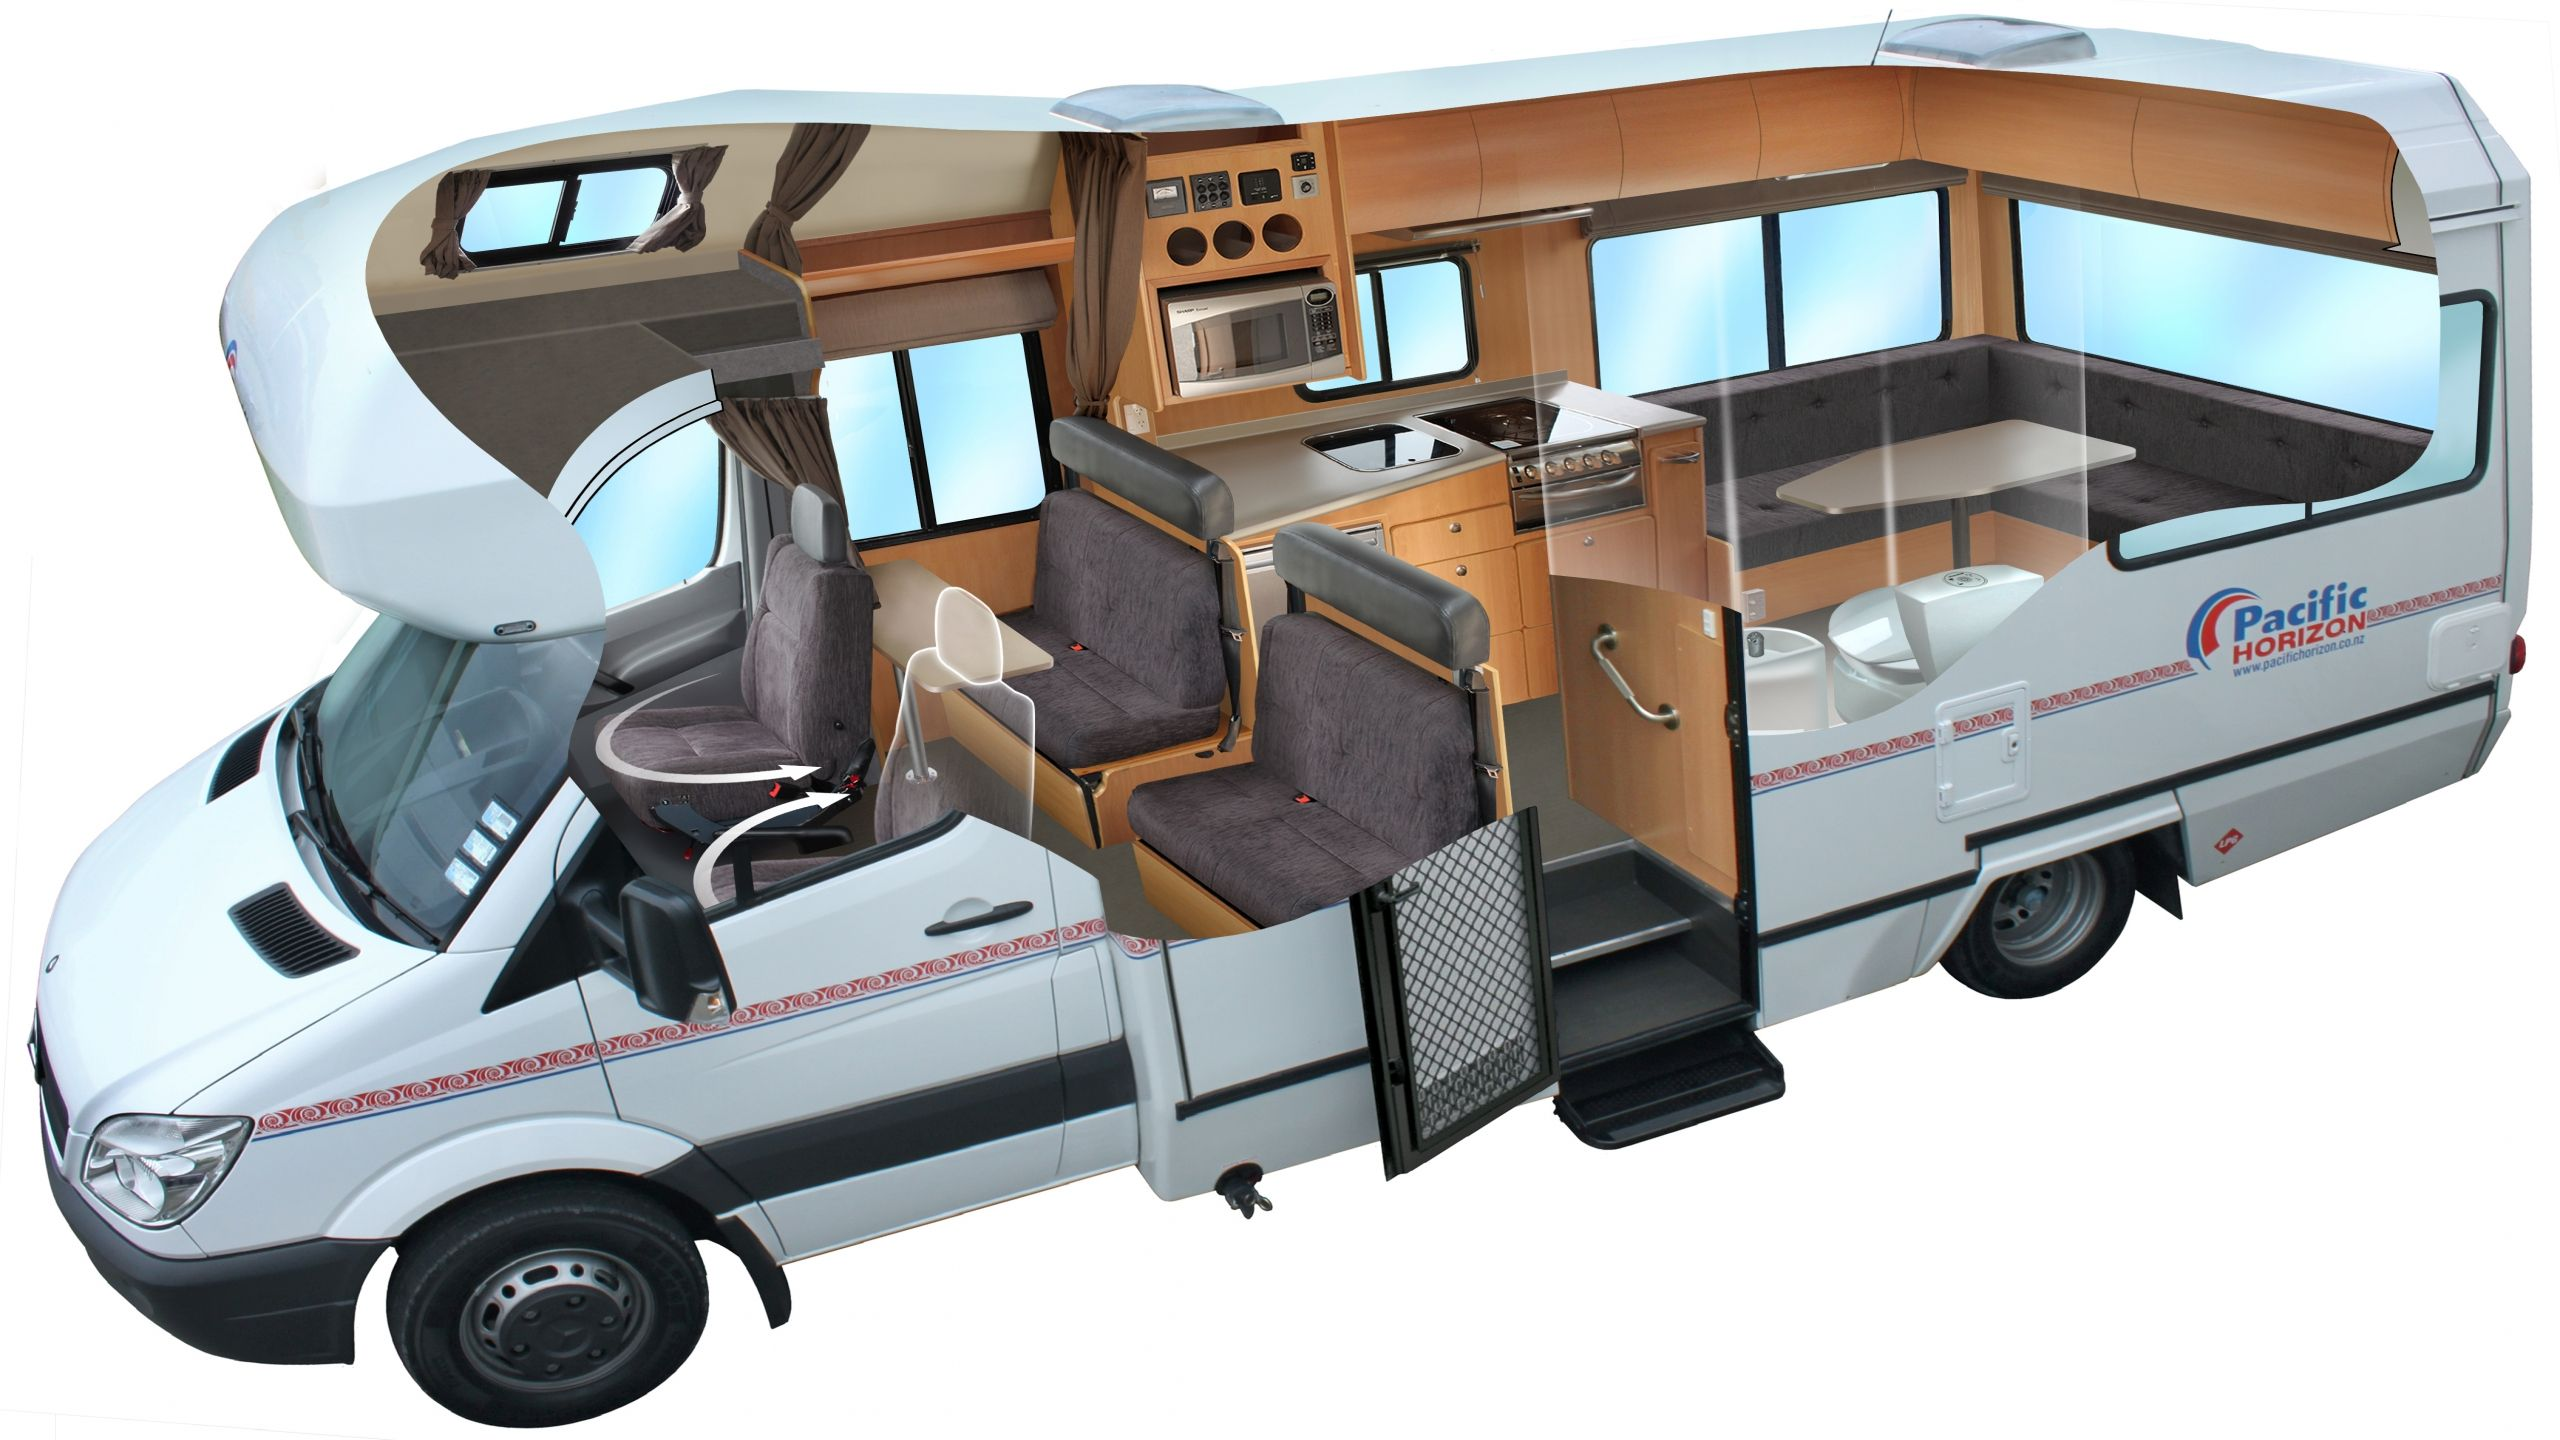 Homemade Rv In Arizona Tiny Campers Mini Travel Trailers By Sunset Park Manufacturing Home Improvement Small